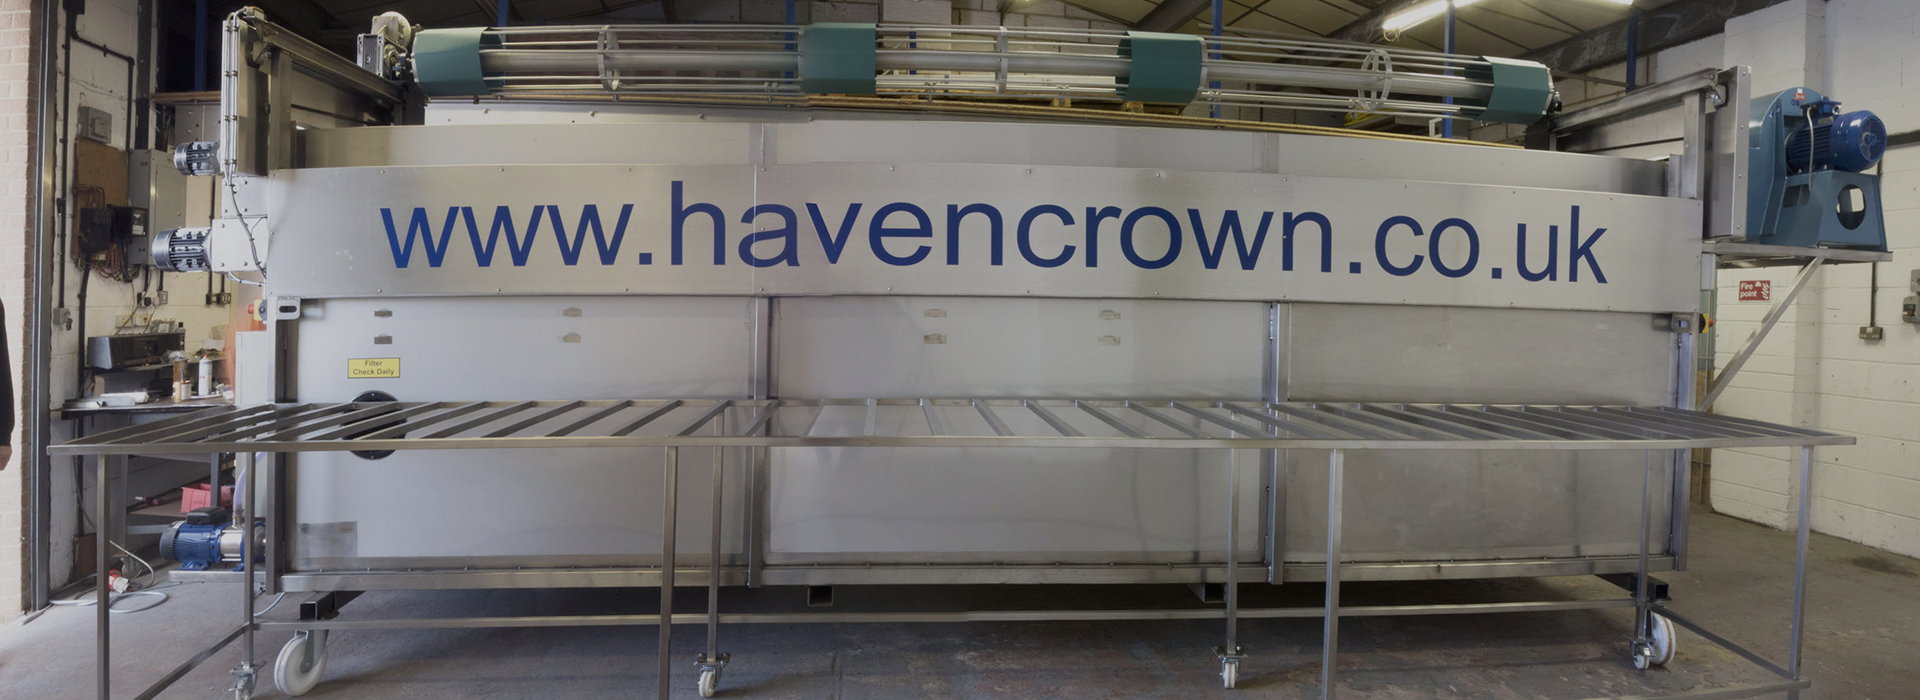 havencrown-slideshow-5.jpg